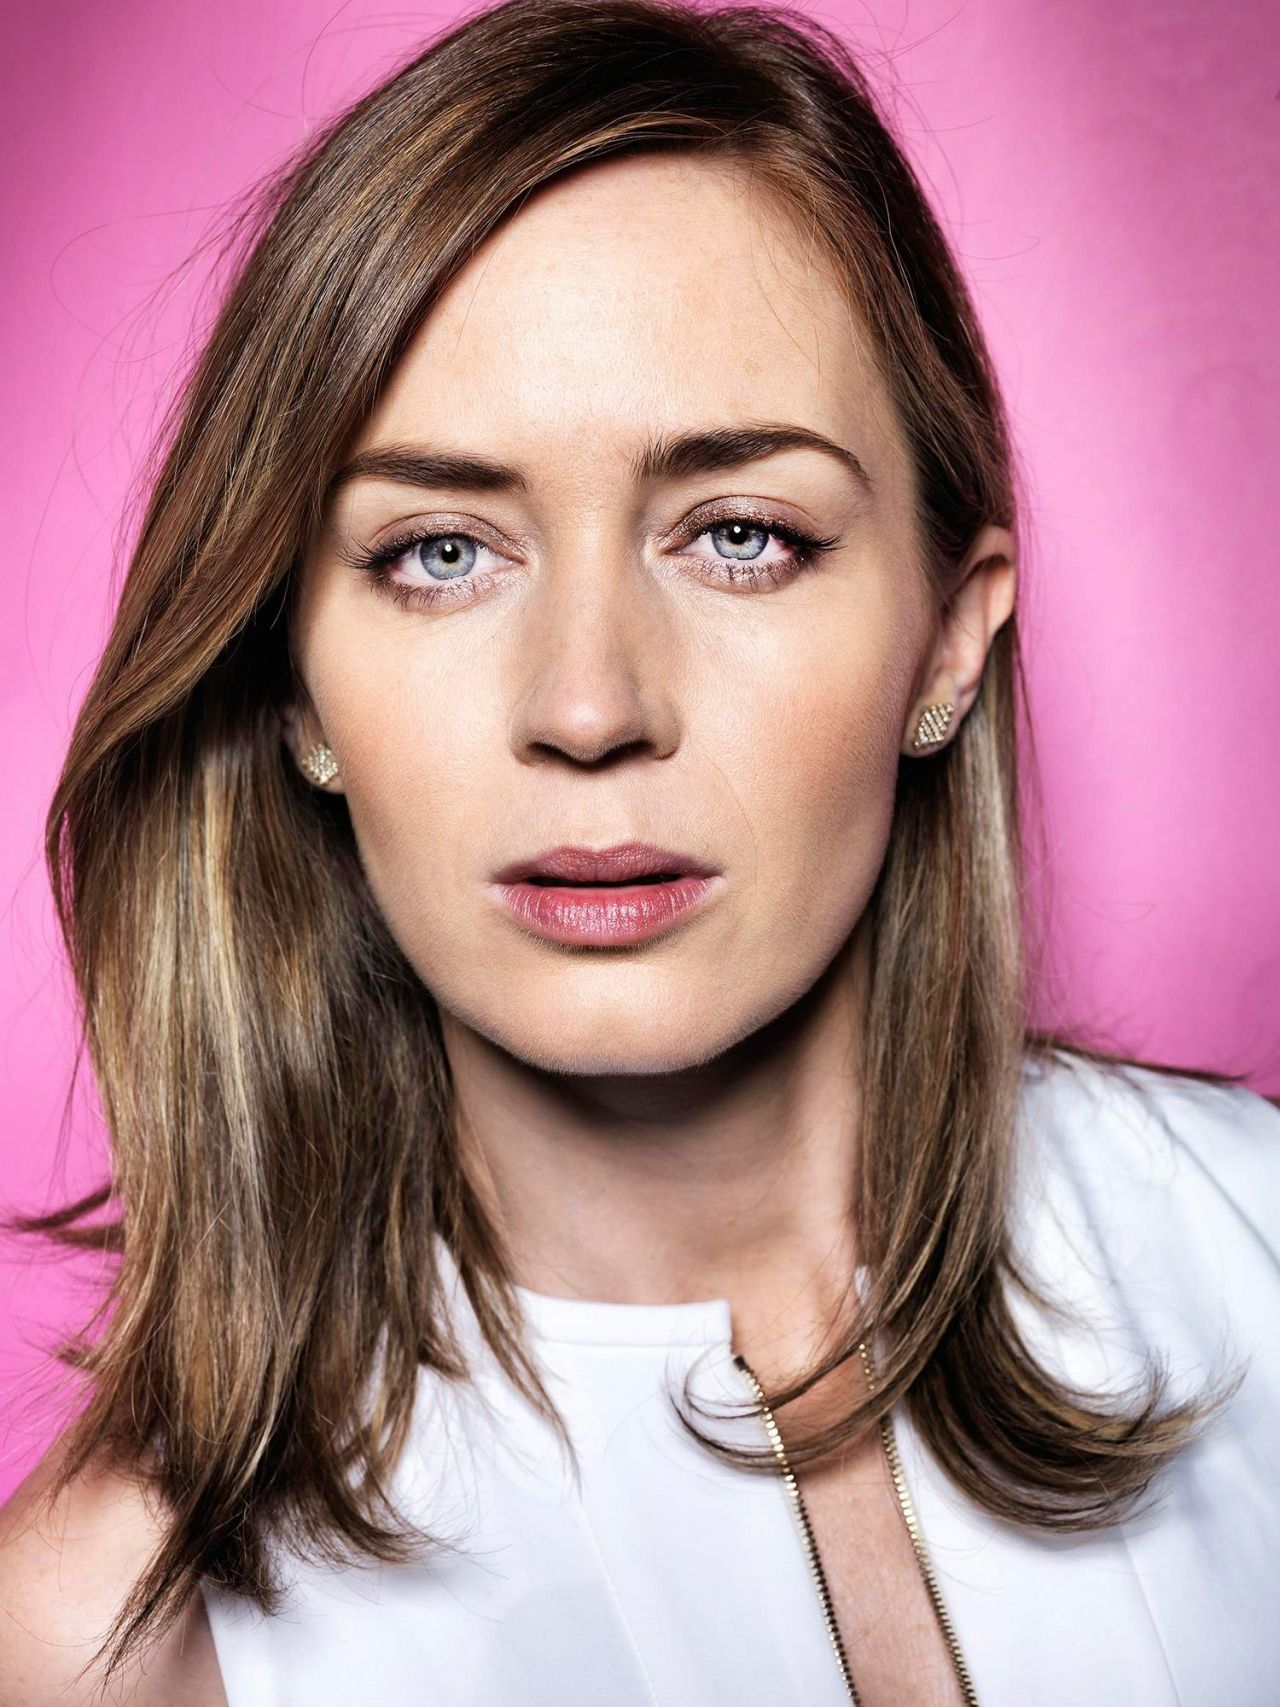 Emily Blunt – Photoshoot for USA Today Magazine (2014) Emily Blunt